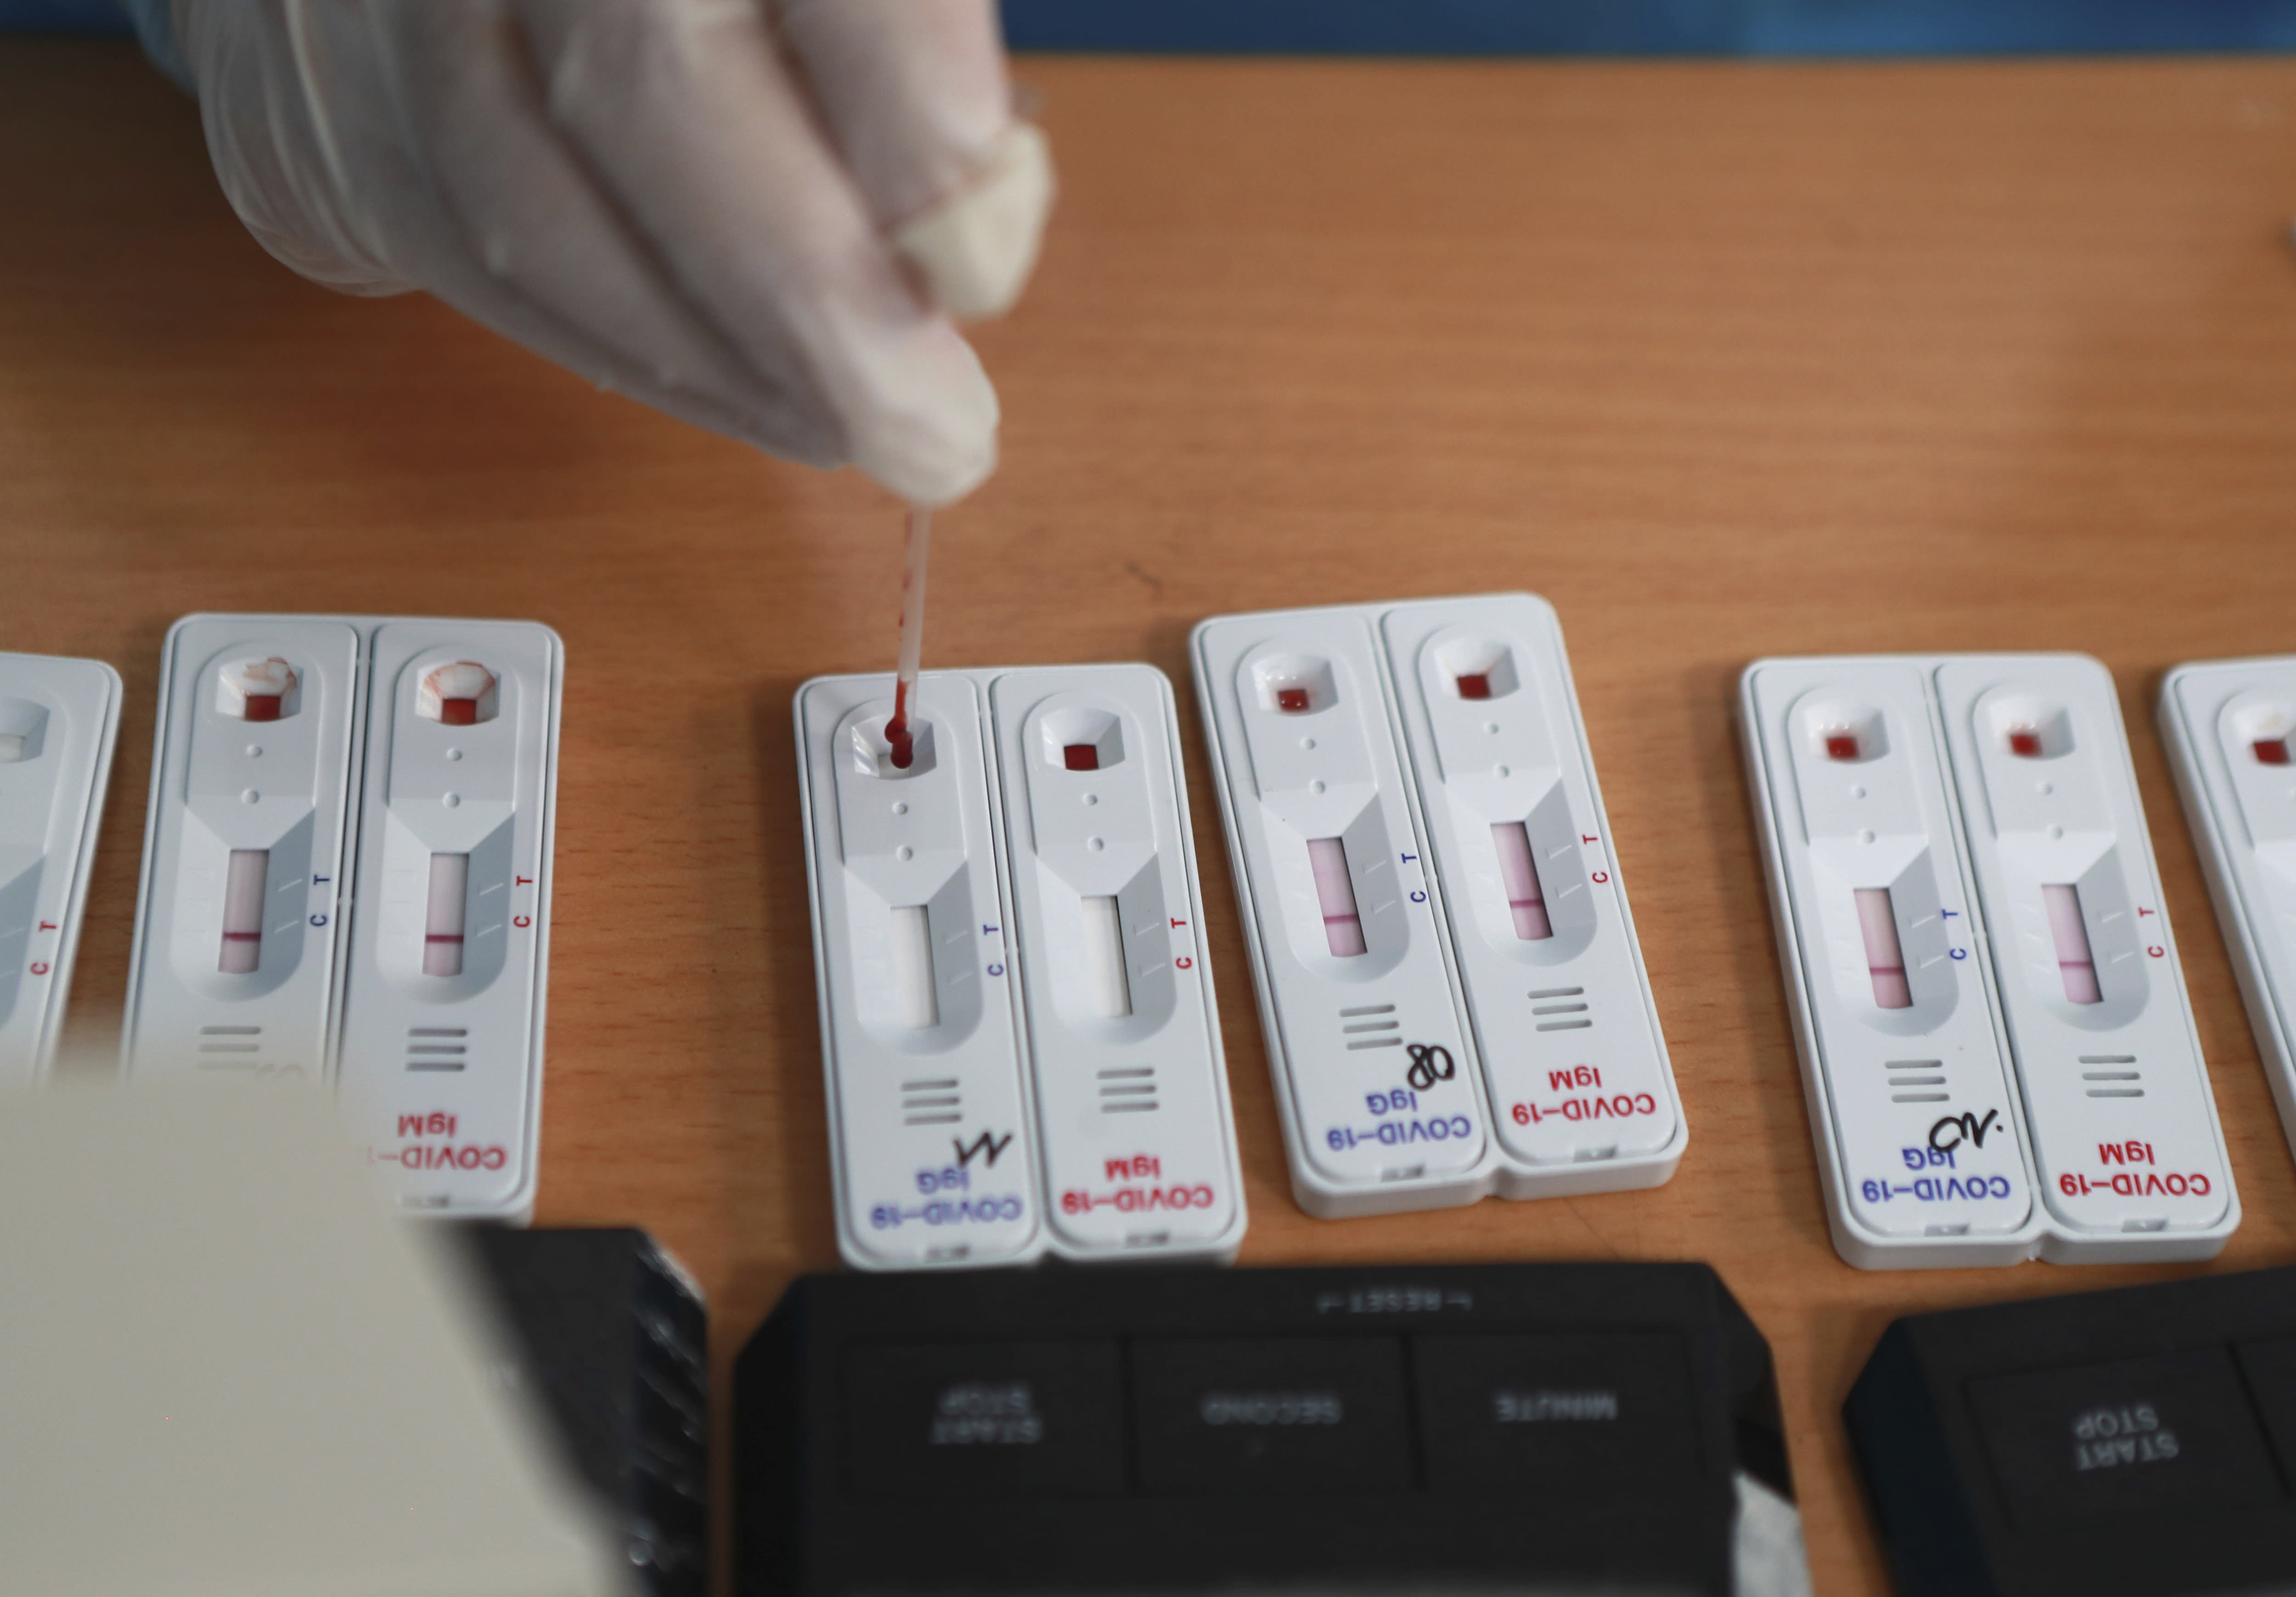 A health worker drops drawn blood on a test kit of COVID-19 in Hanoi, Vietnam, Friday, July 31, 2020. Vietnam reported on Friday the country's first death of a person with the coronavirus as it struggles with a renewed outbreak after 99 days without any cases. (AP Photo/Hau Dinh)